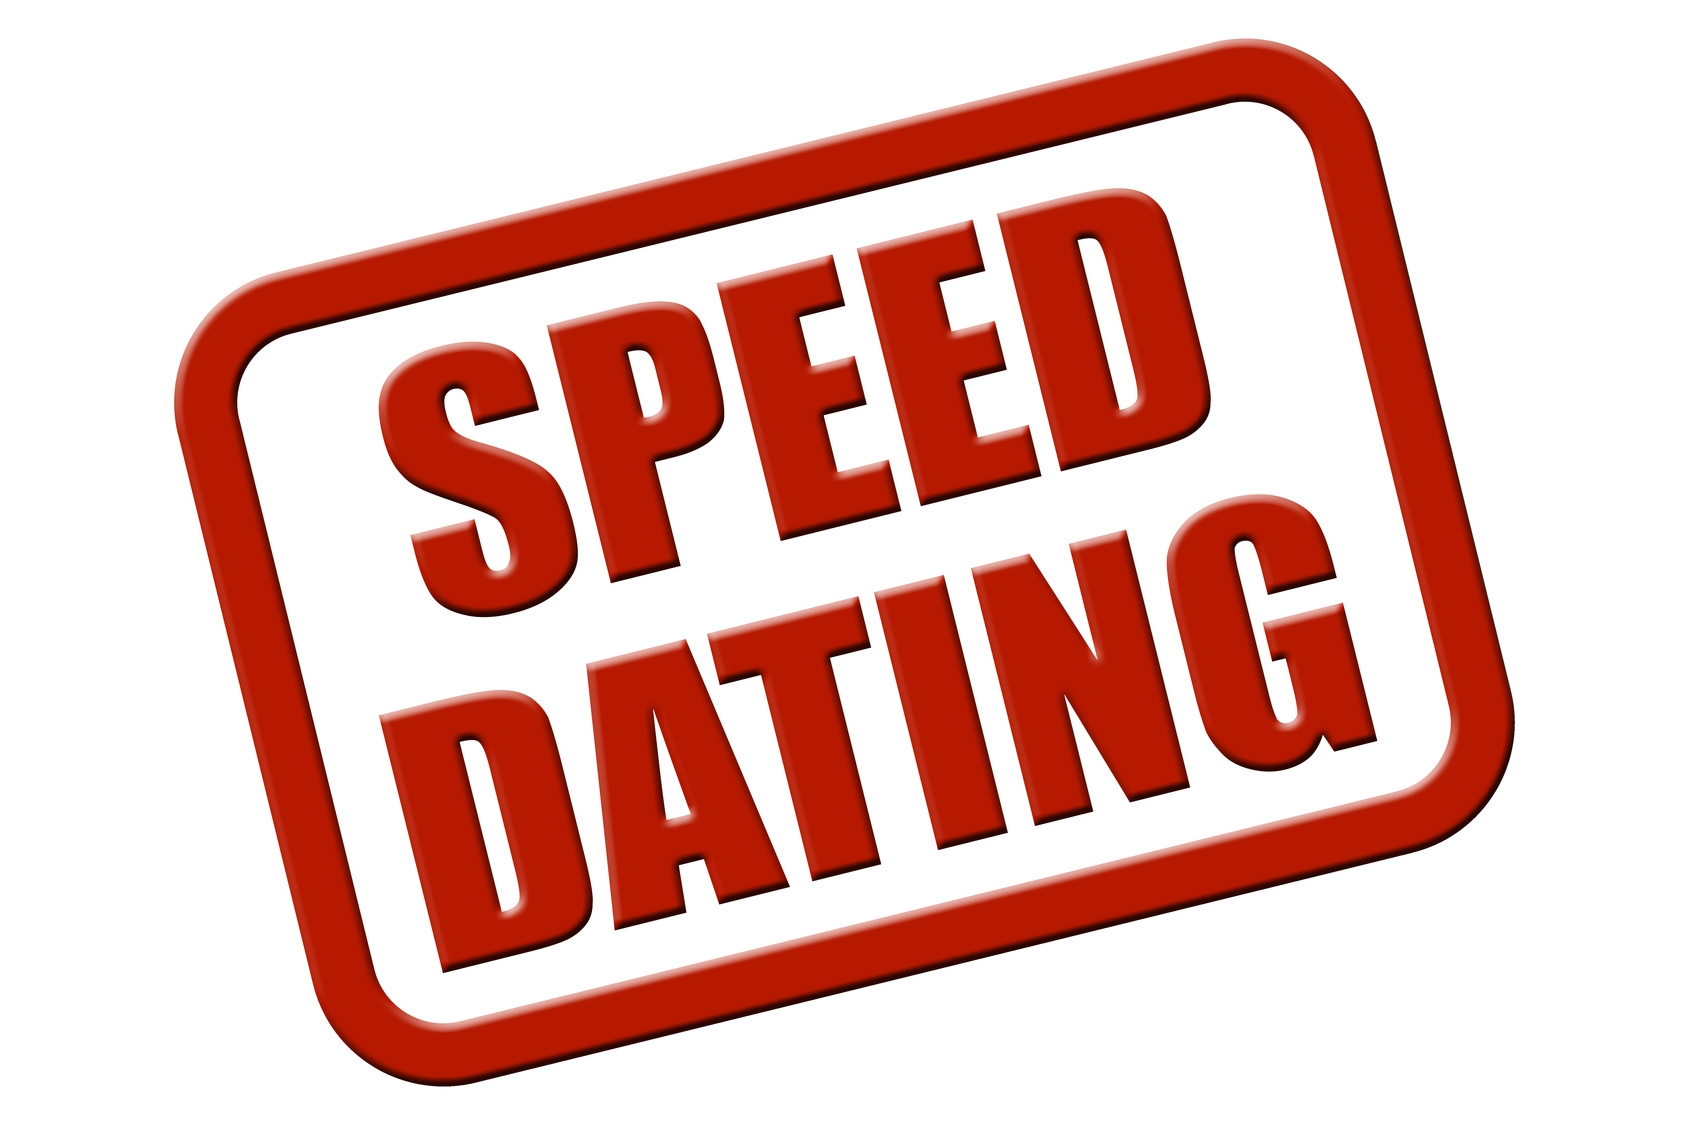 Speed dating homme riche